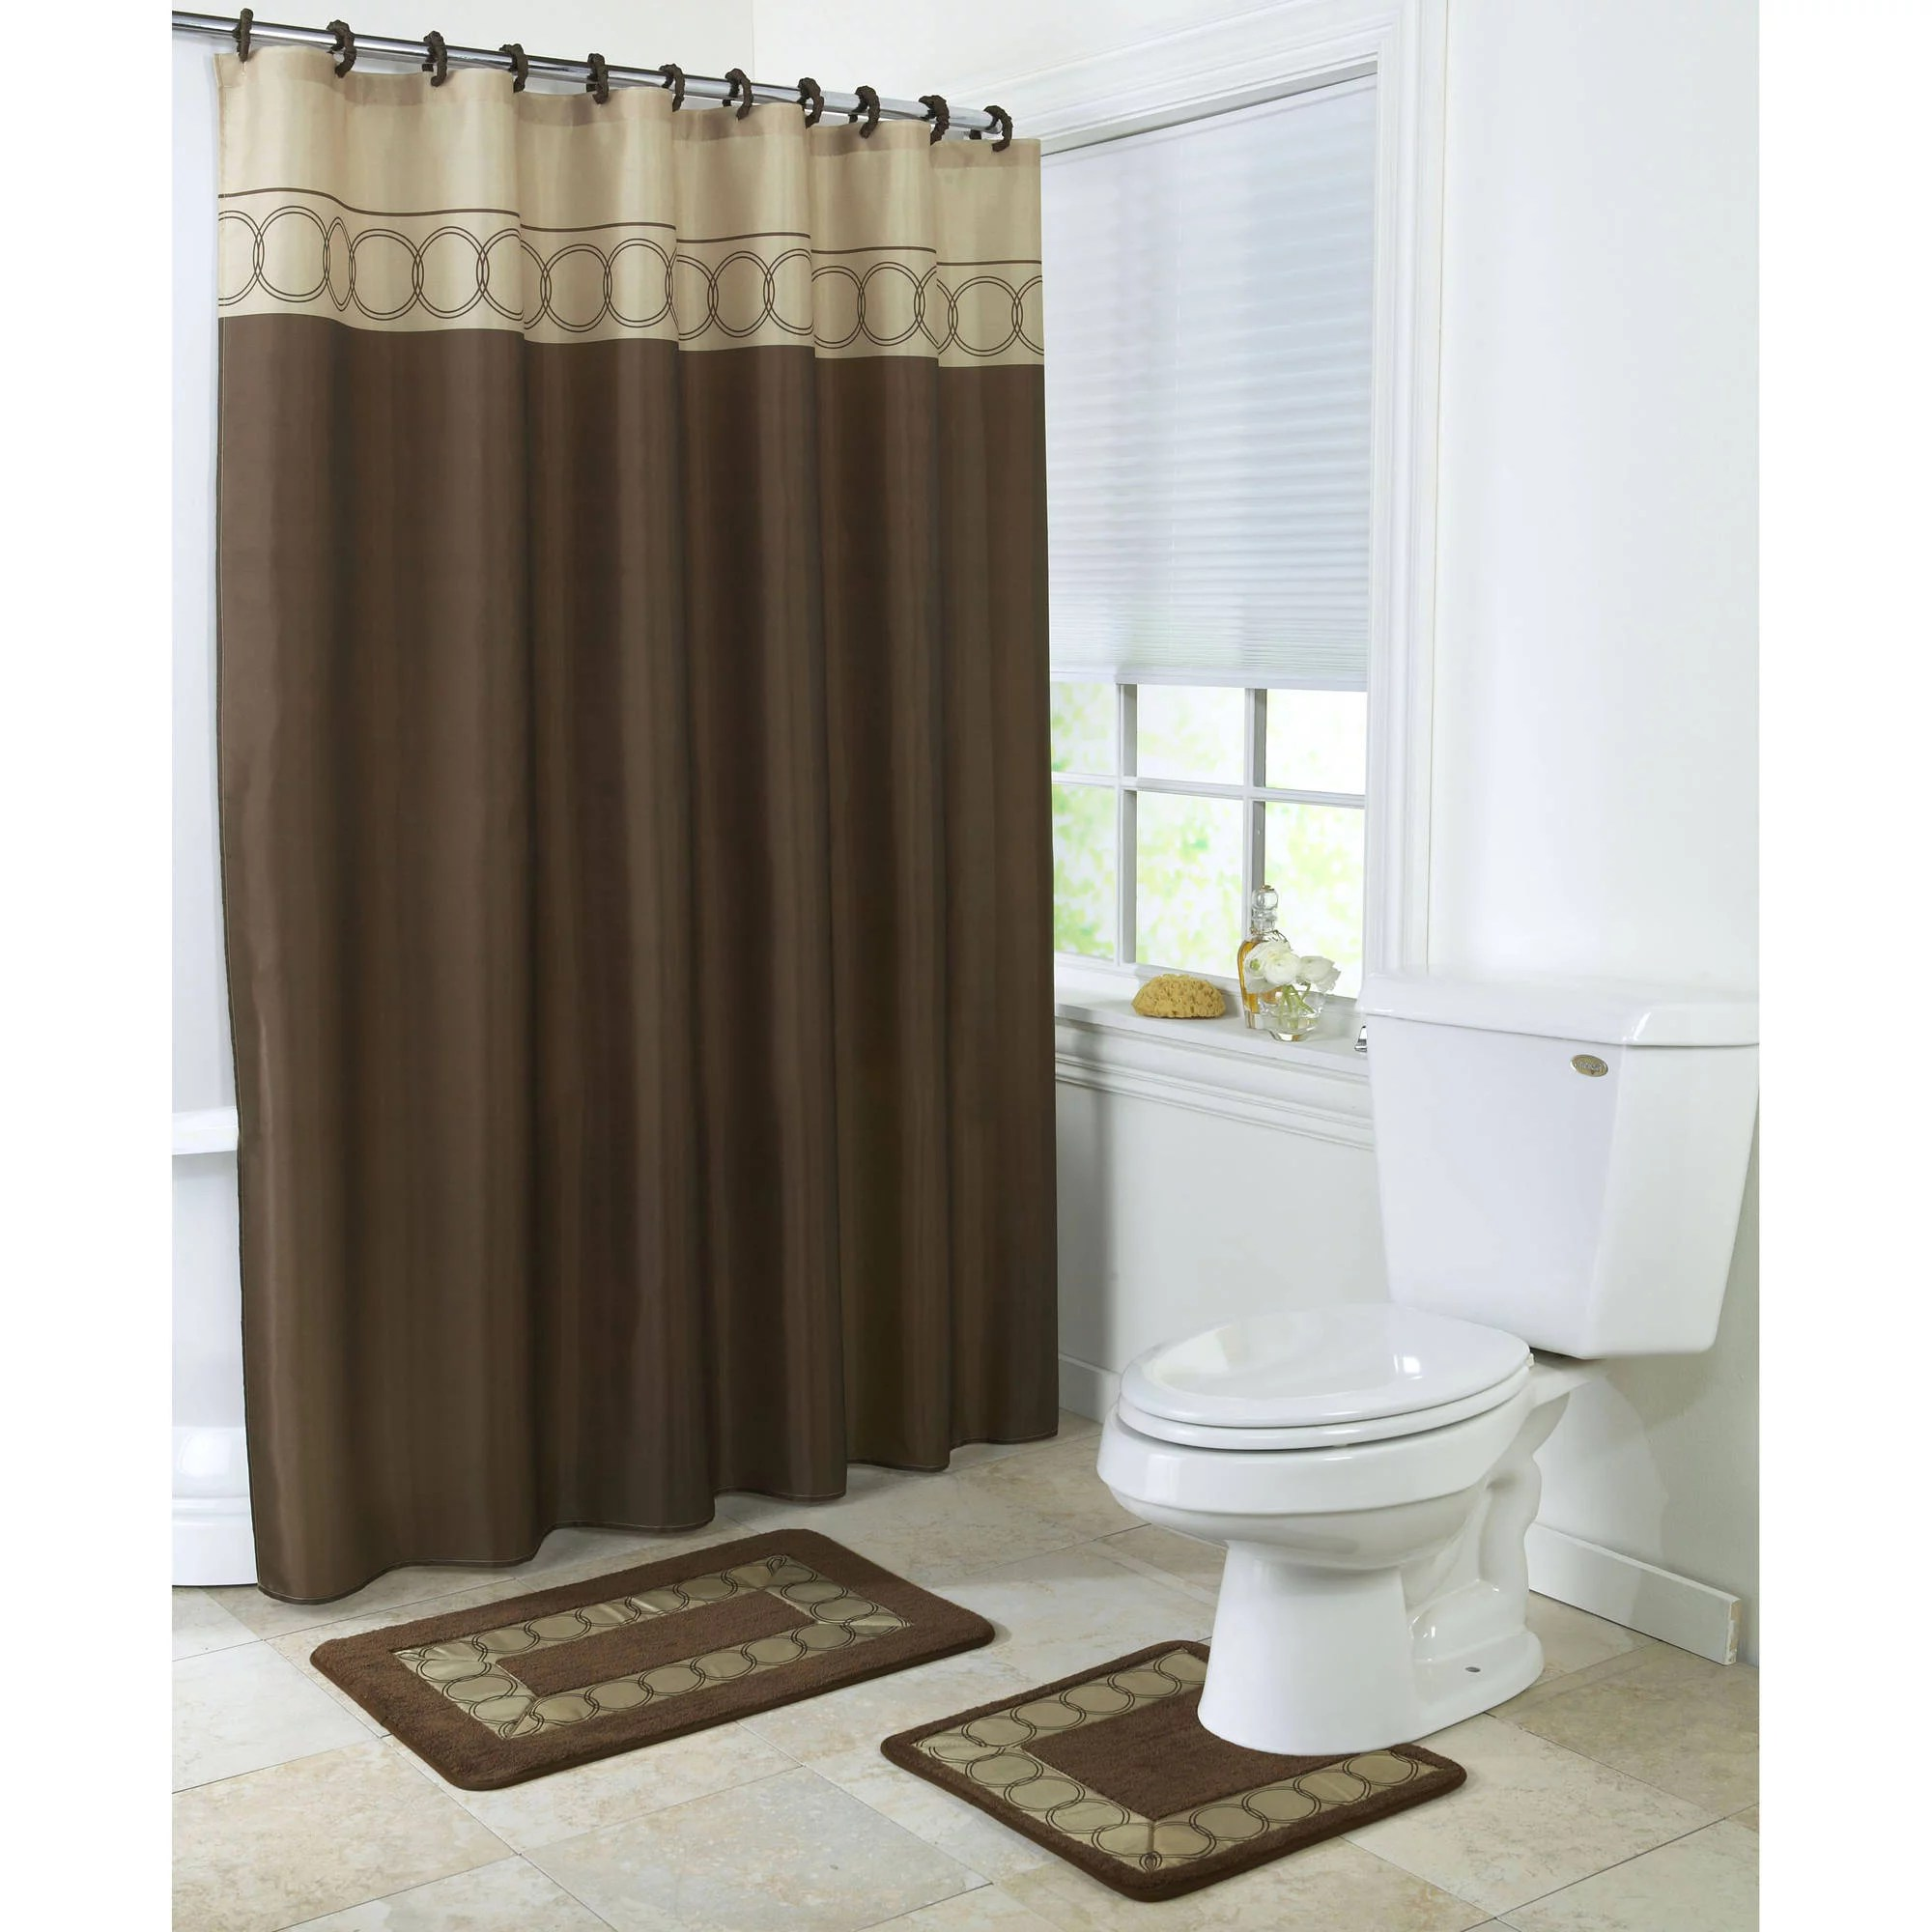 Bathroom Shower Sets 4 Piece Bathroom Rug Set 3 Piece Chocolate Ring Bath Rugs With Fabric Shower Curtain And Matching Mat Rings